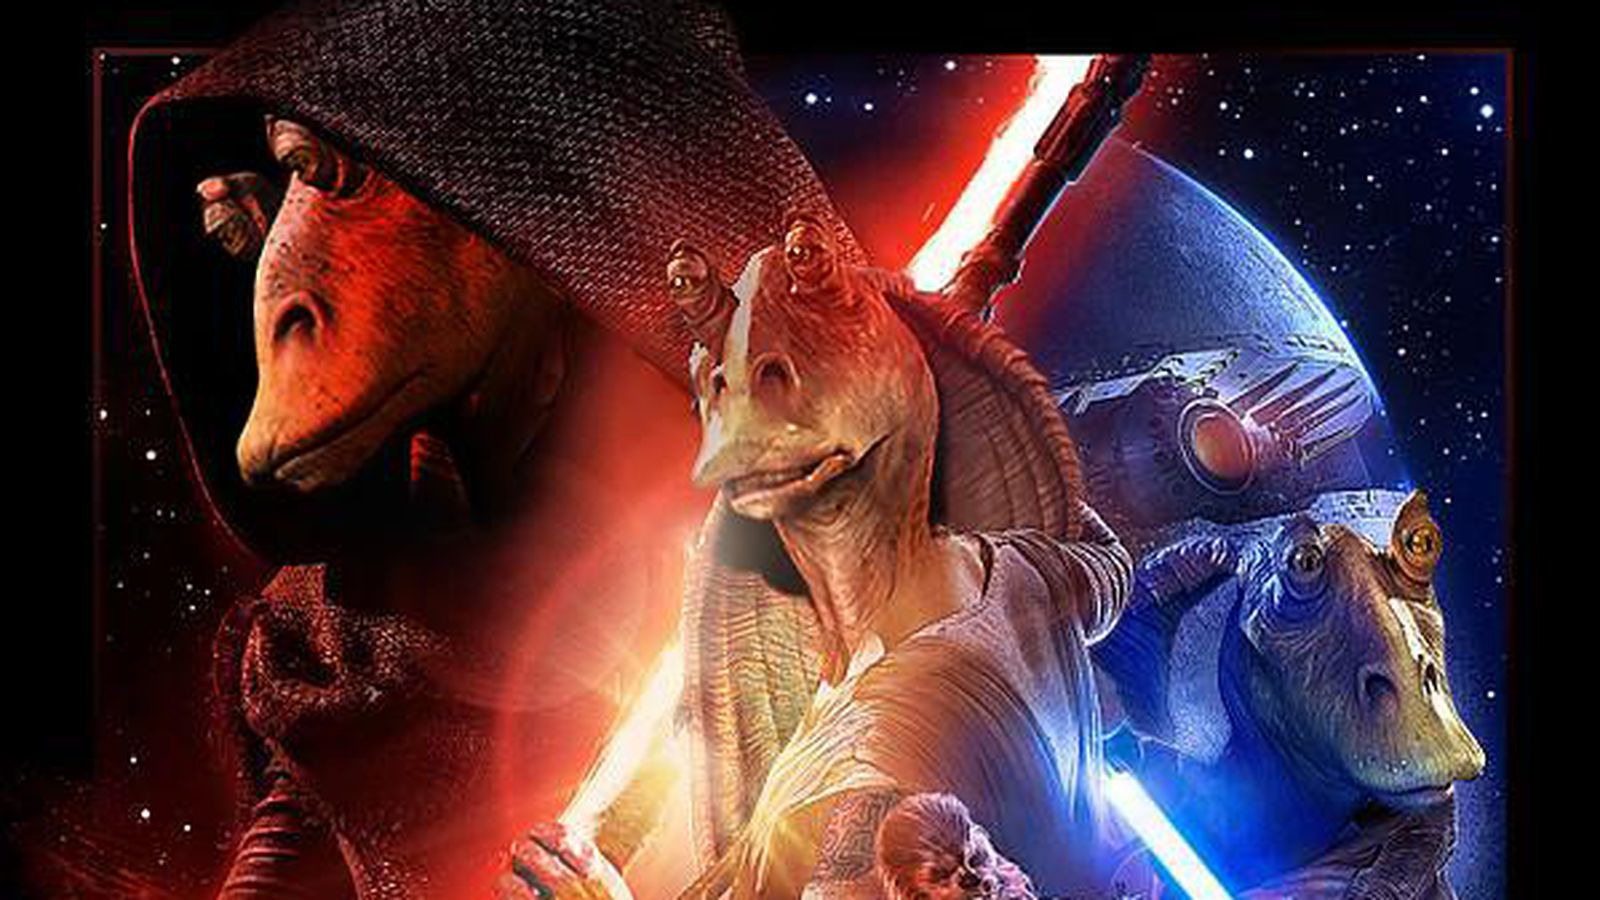 star wars parody poster designer absolutely loves jar jar